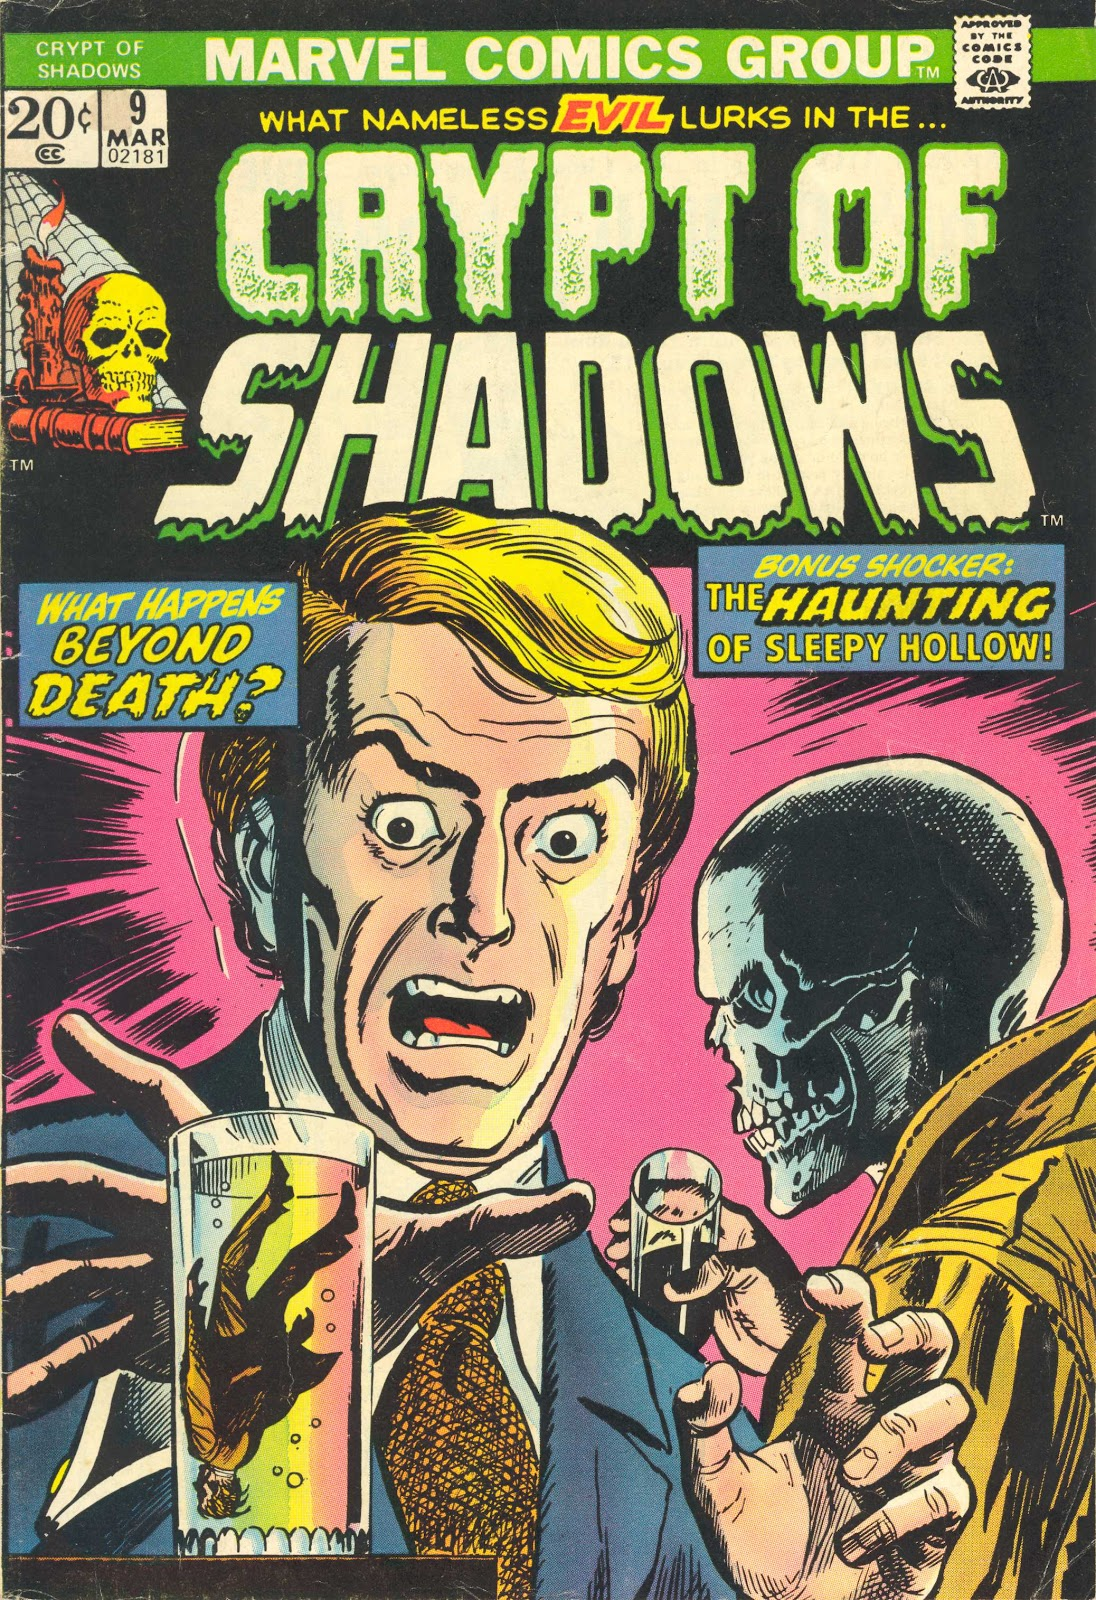 Crypt of Shadows (1973) 9 Page 1